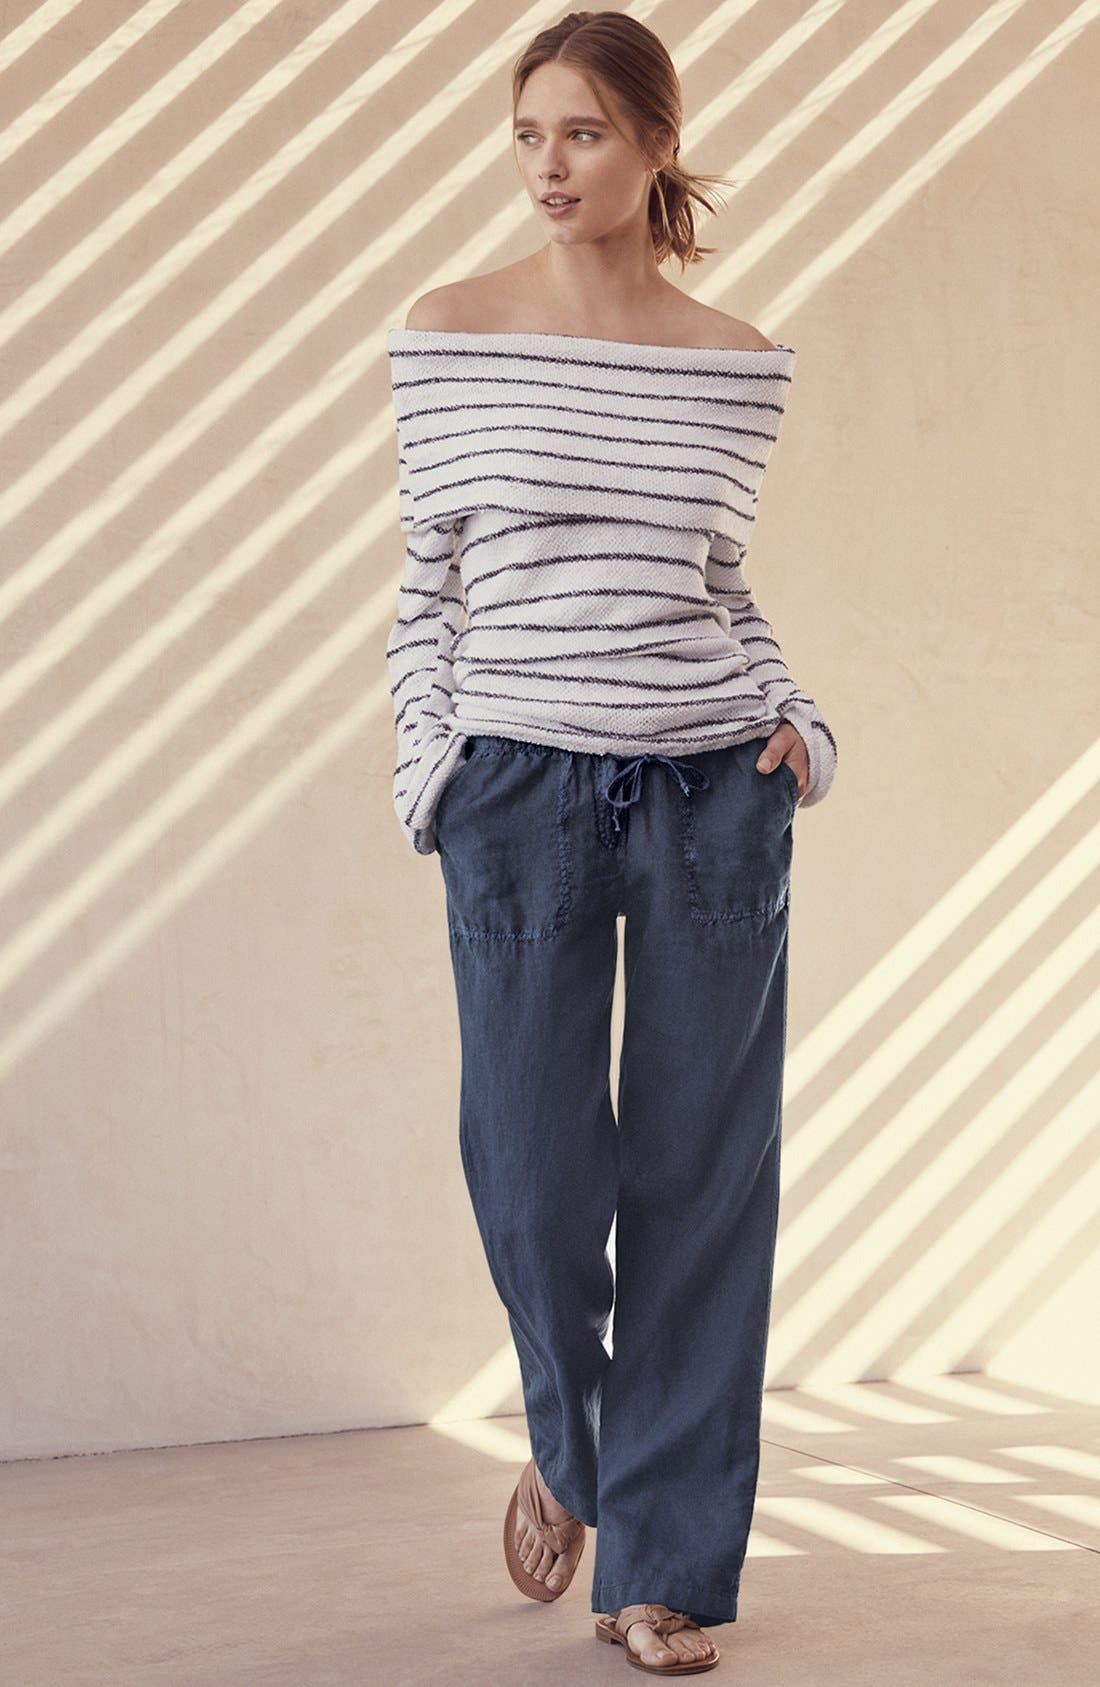 Convertible Off the Shoulder Pullover,                             Alternate thumbnail 2, color,                             White- Navy Stripe